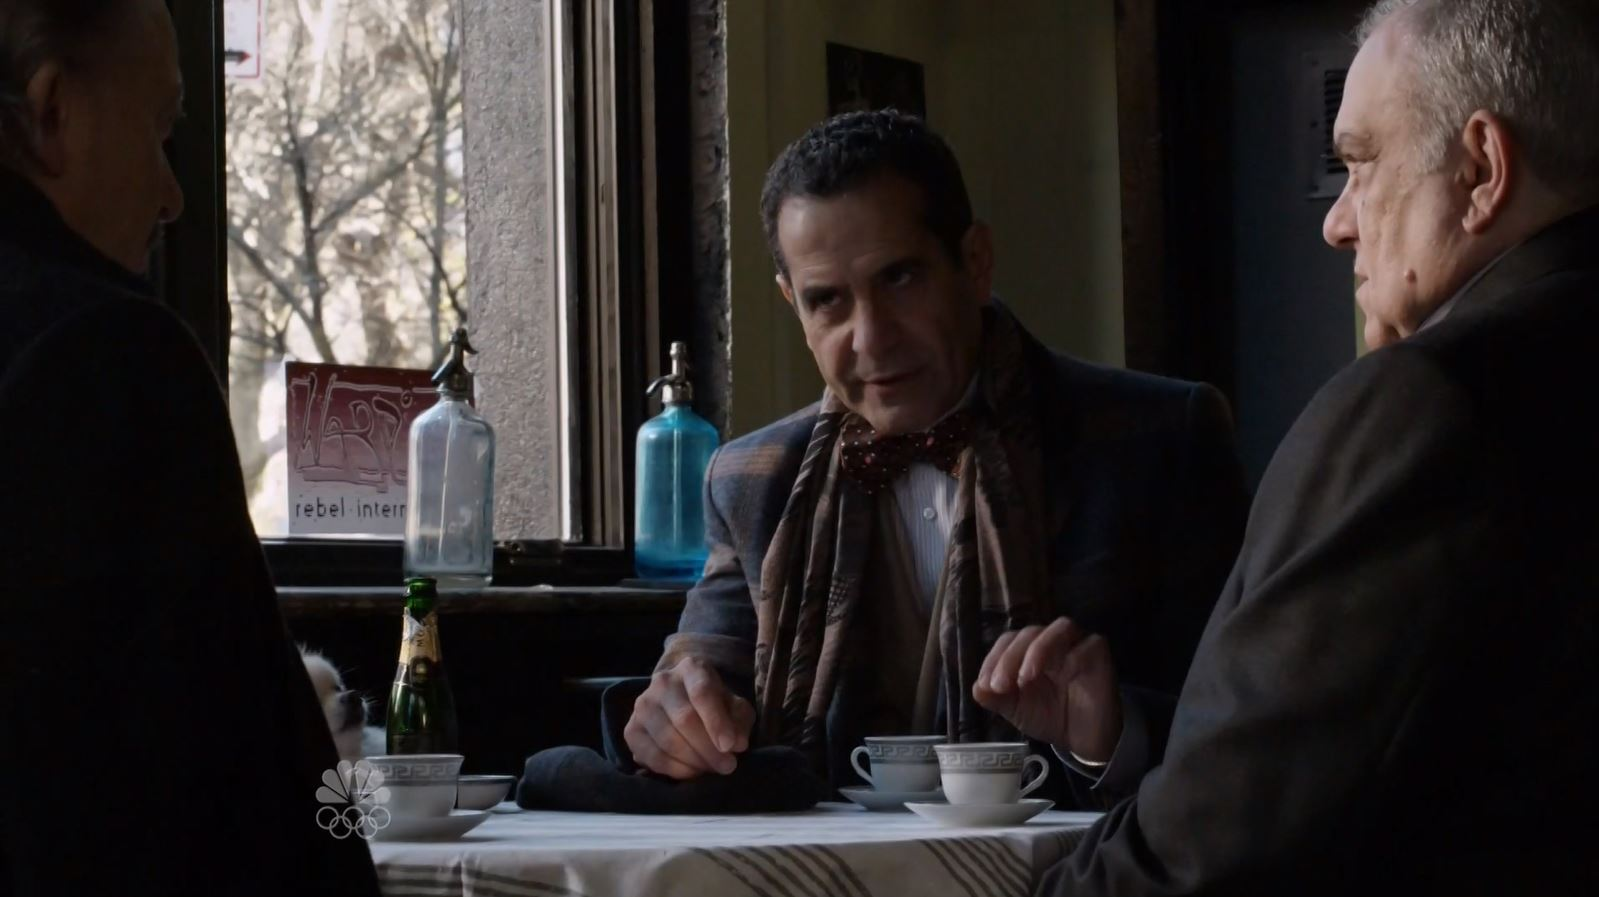 Alistair Pitt makes the deal. The Blacklist S3Ep13 Alistair Pitt Review